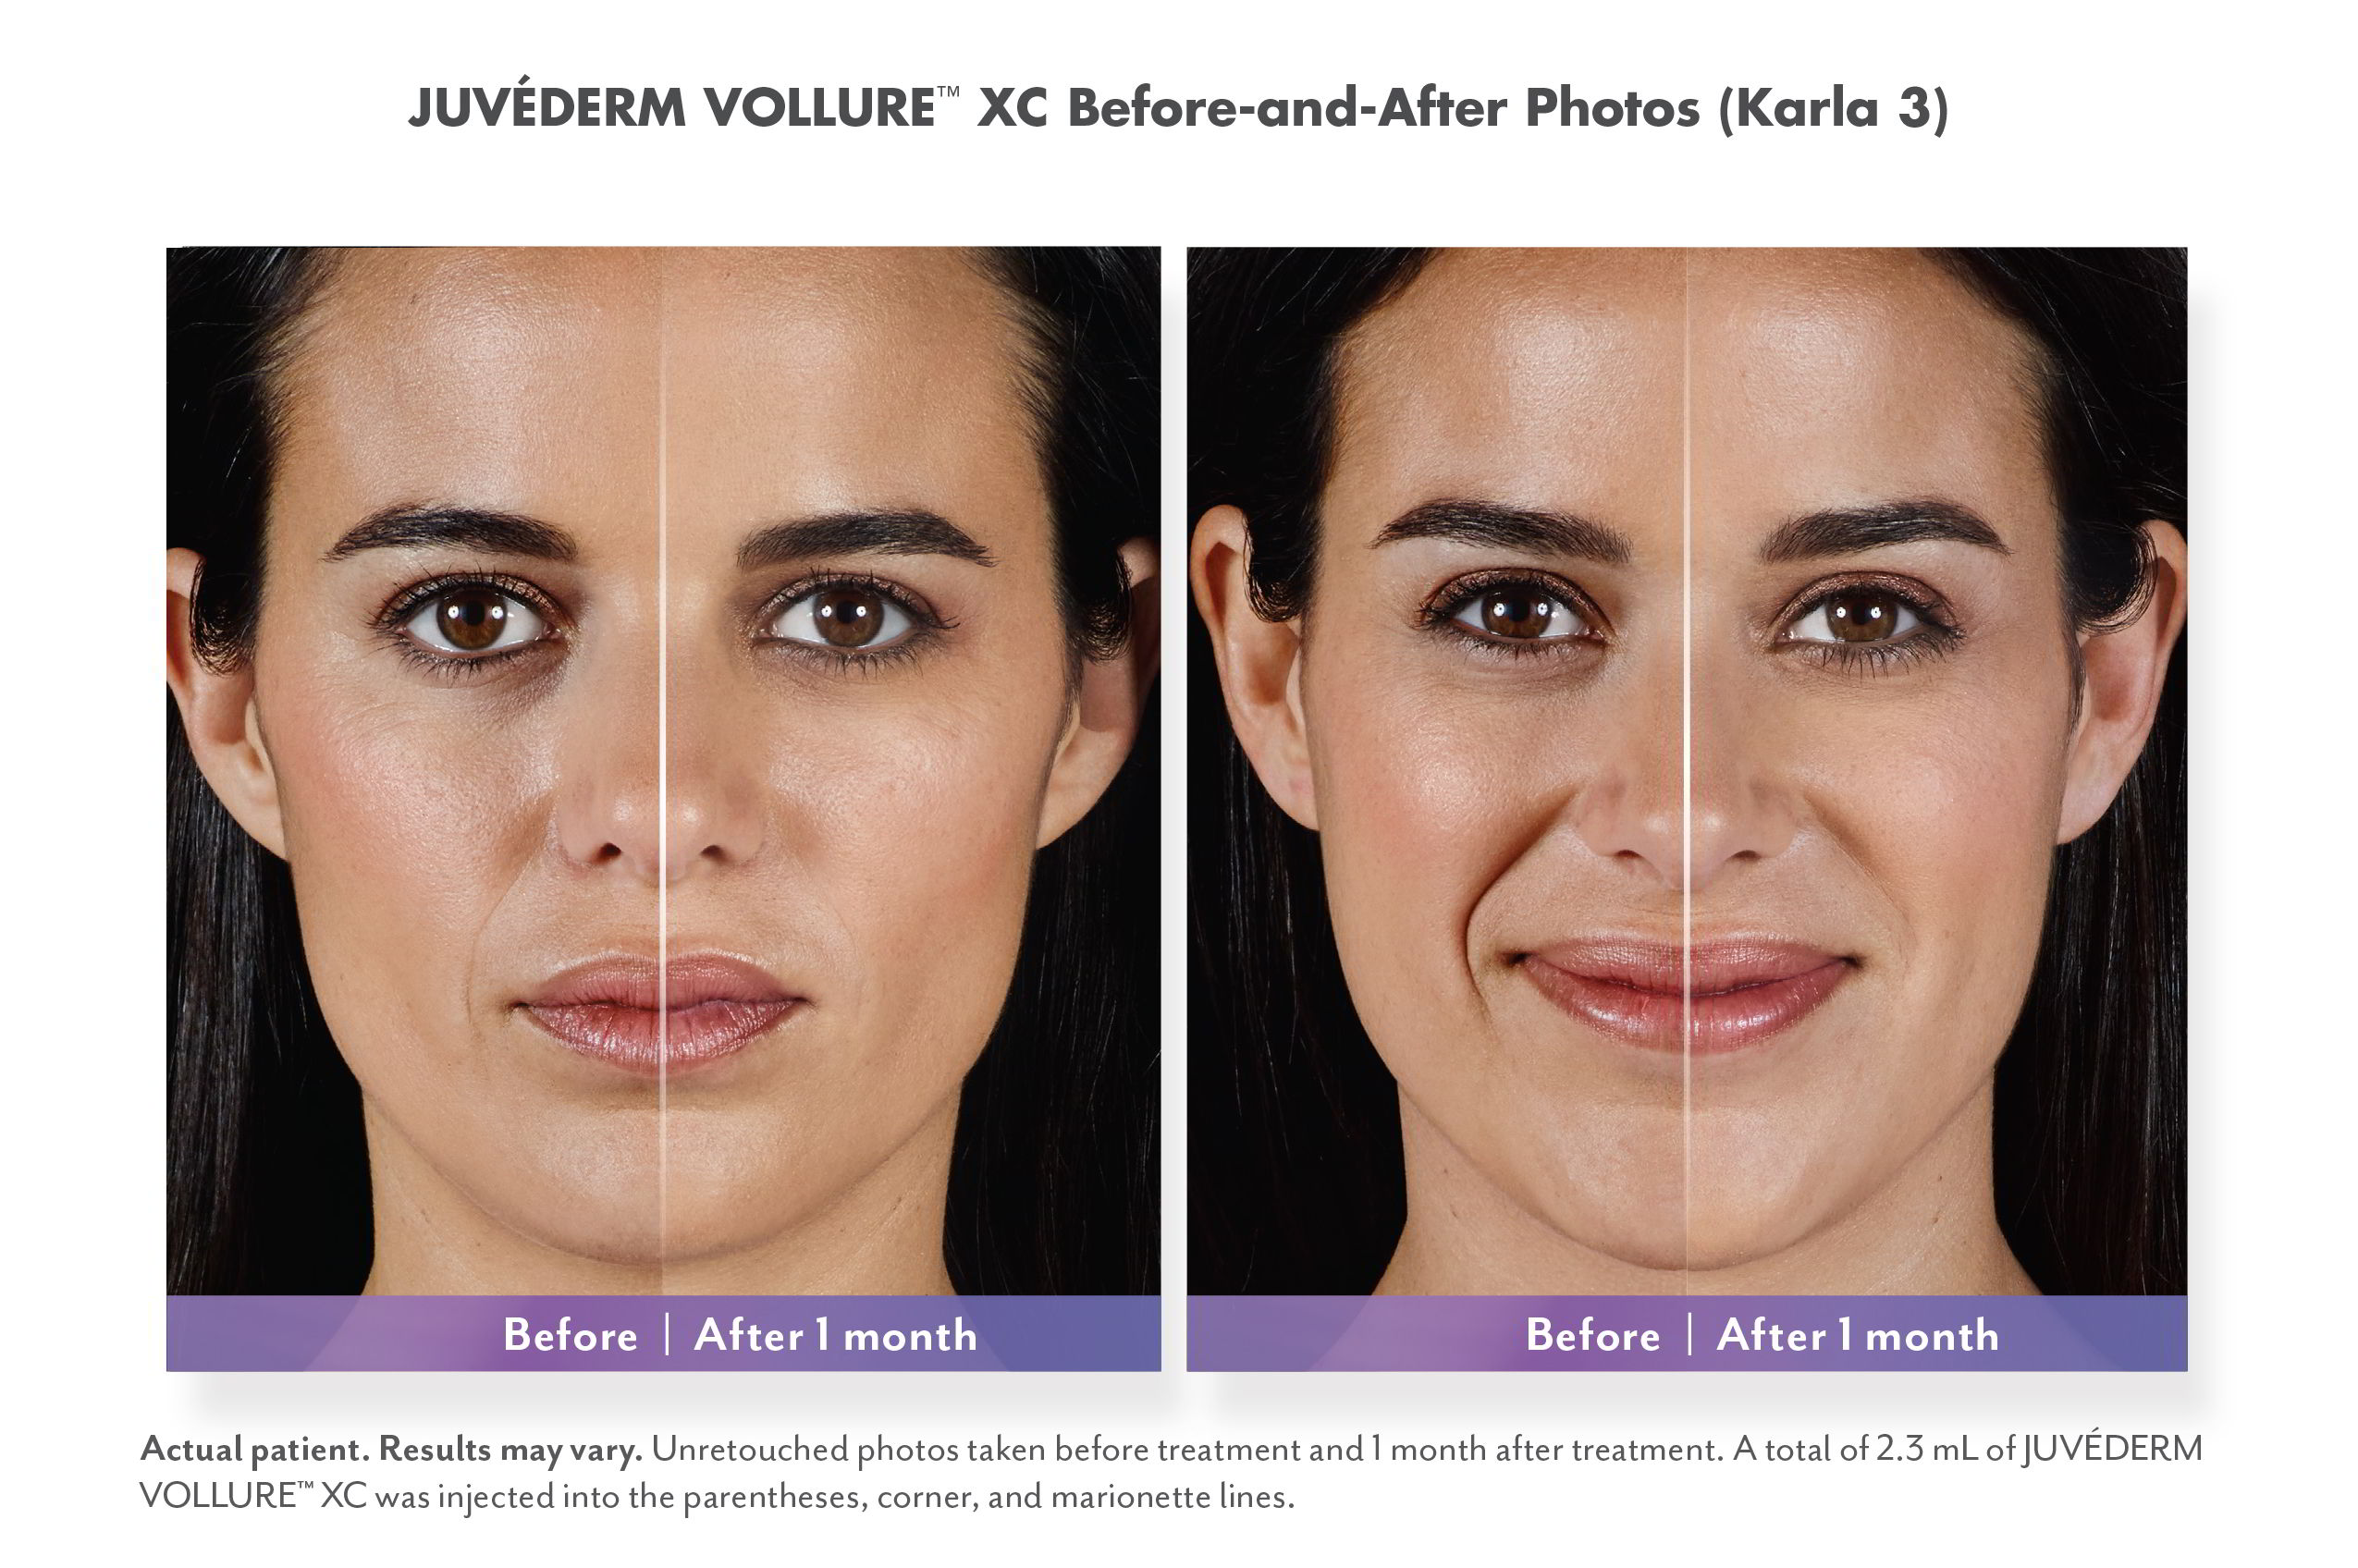 Juvederm Vollure XC Injectable Fillers